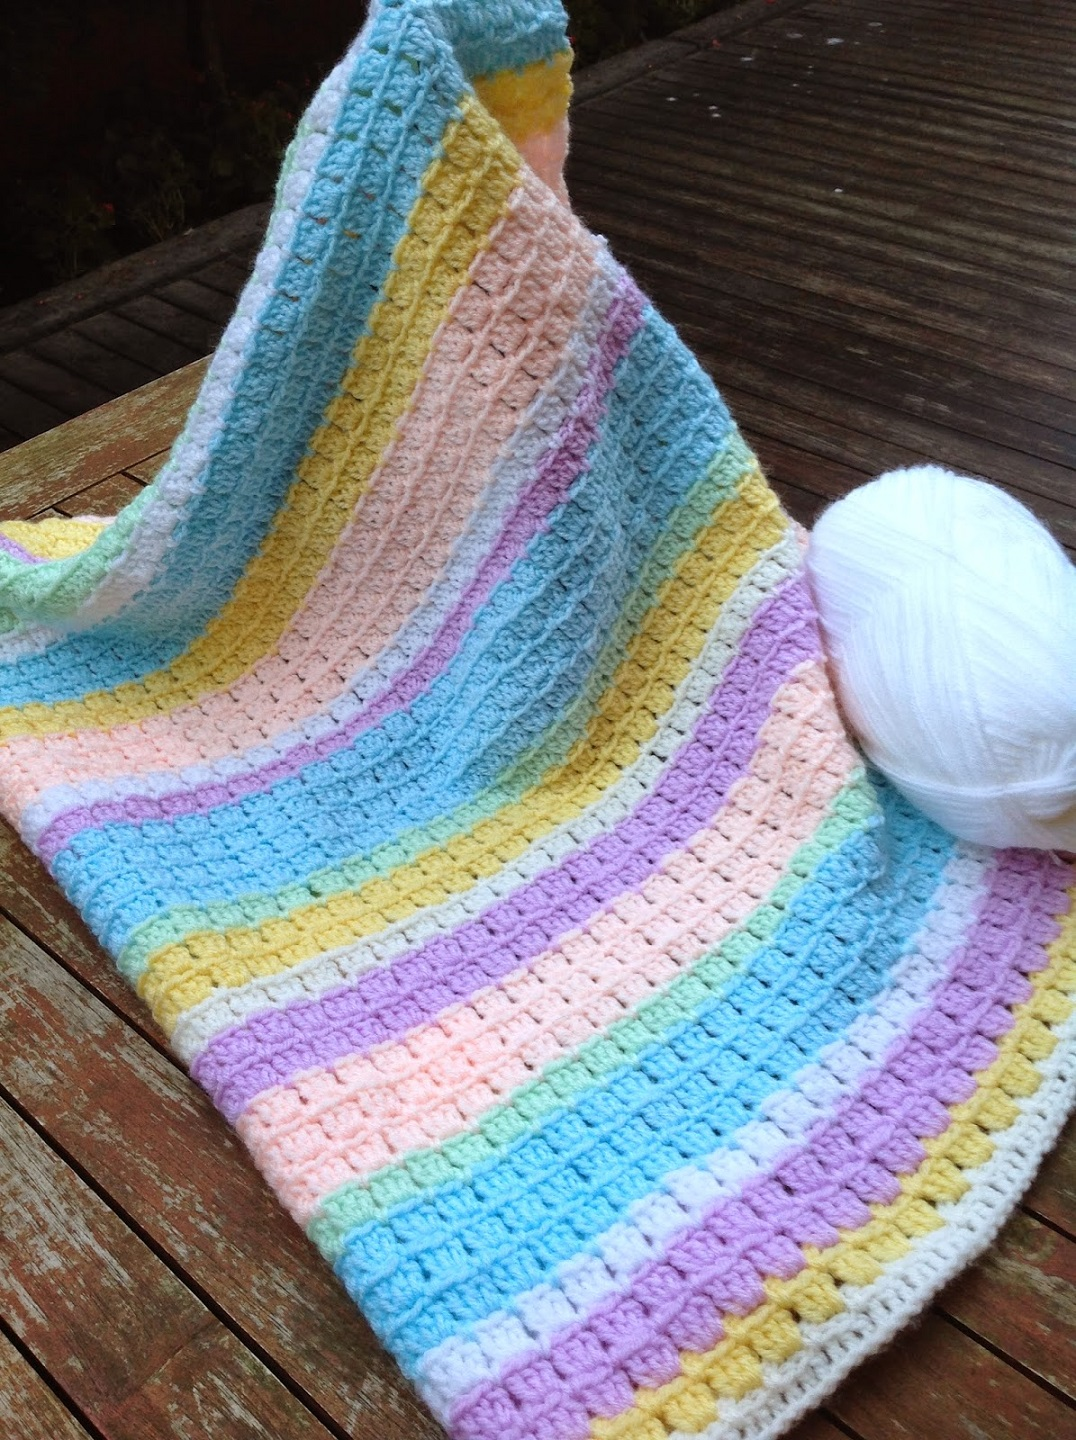 [Free Pattern] Adorable Block Stitch Baby Blanket - Knit And Crochet Daily